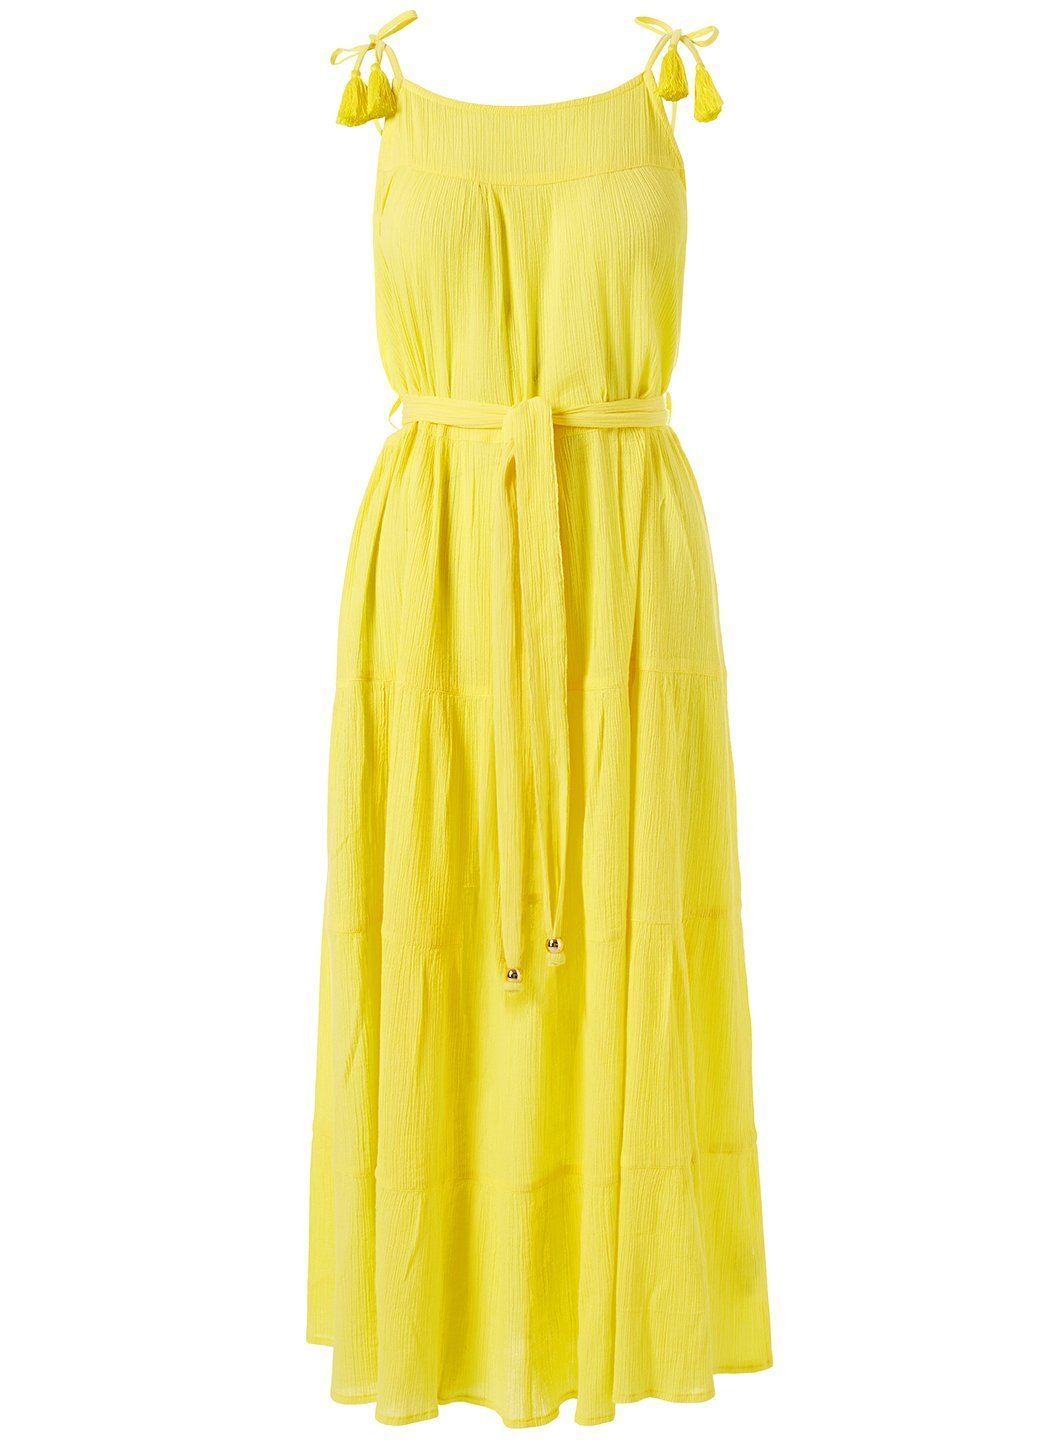 Fru Lemon Dress Cutout